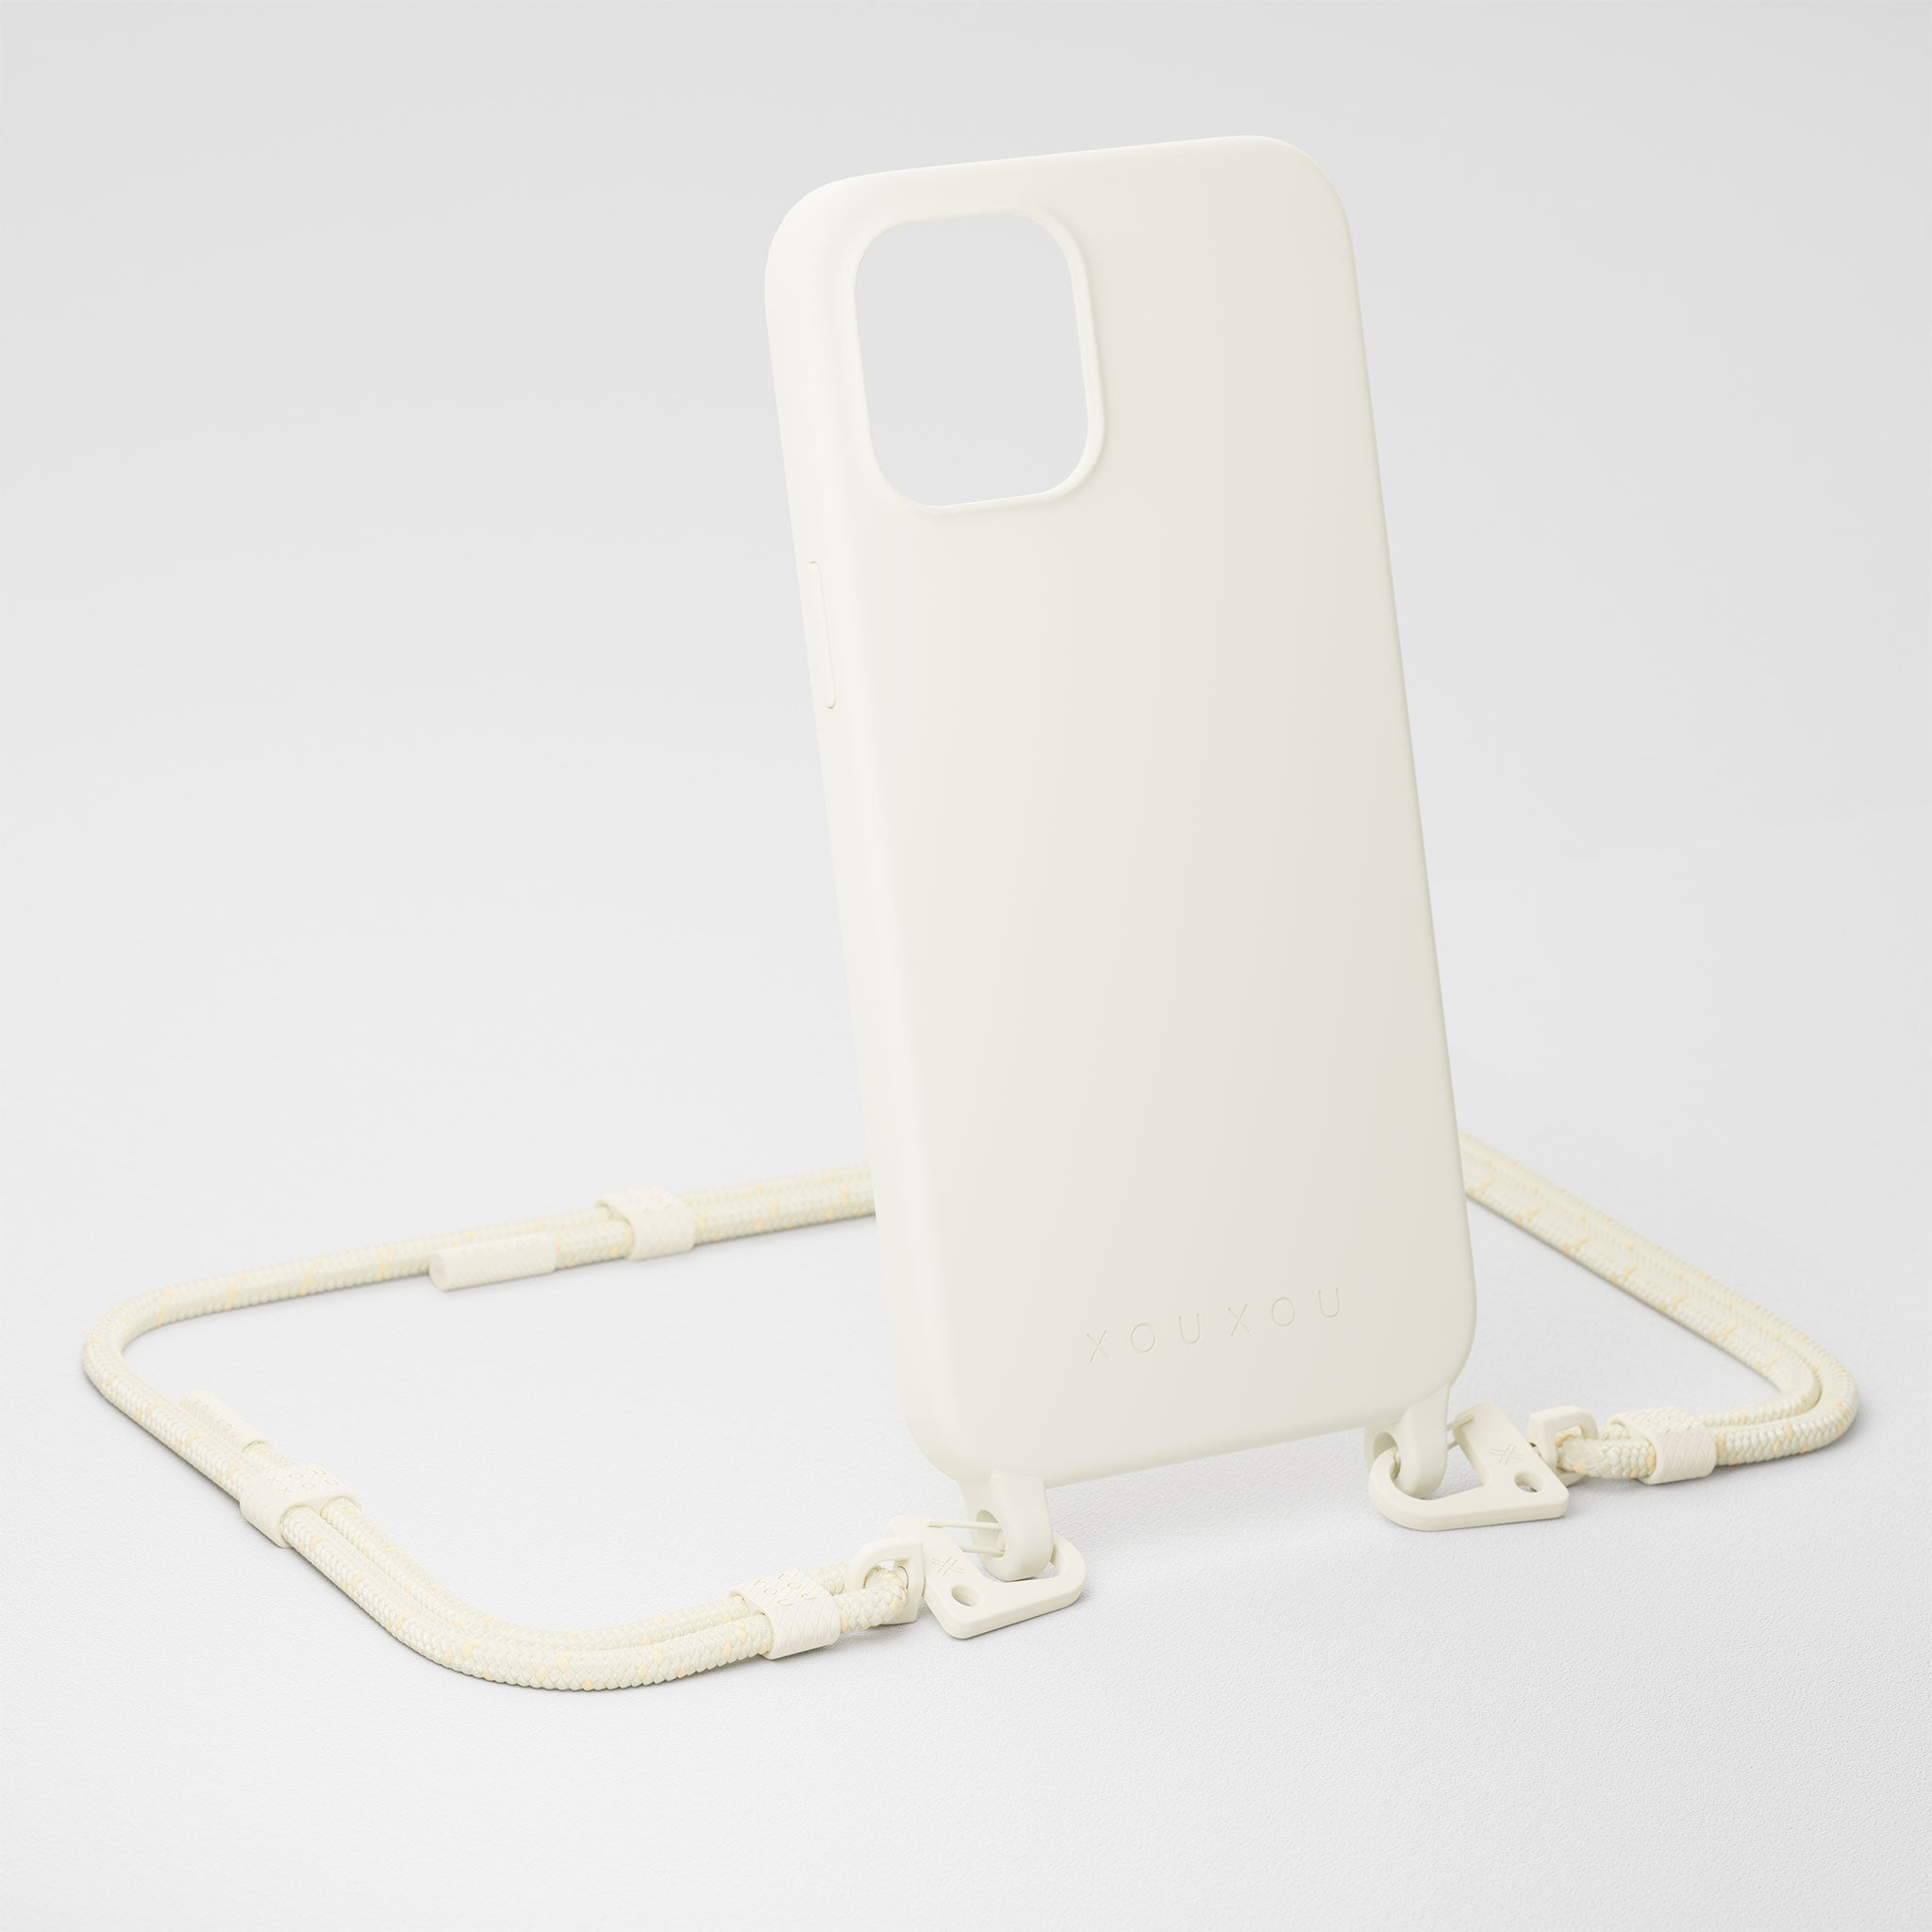 Chalk Silicone Case + Carabiner Rope